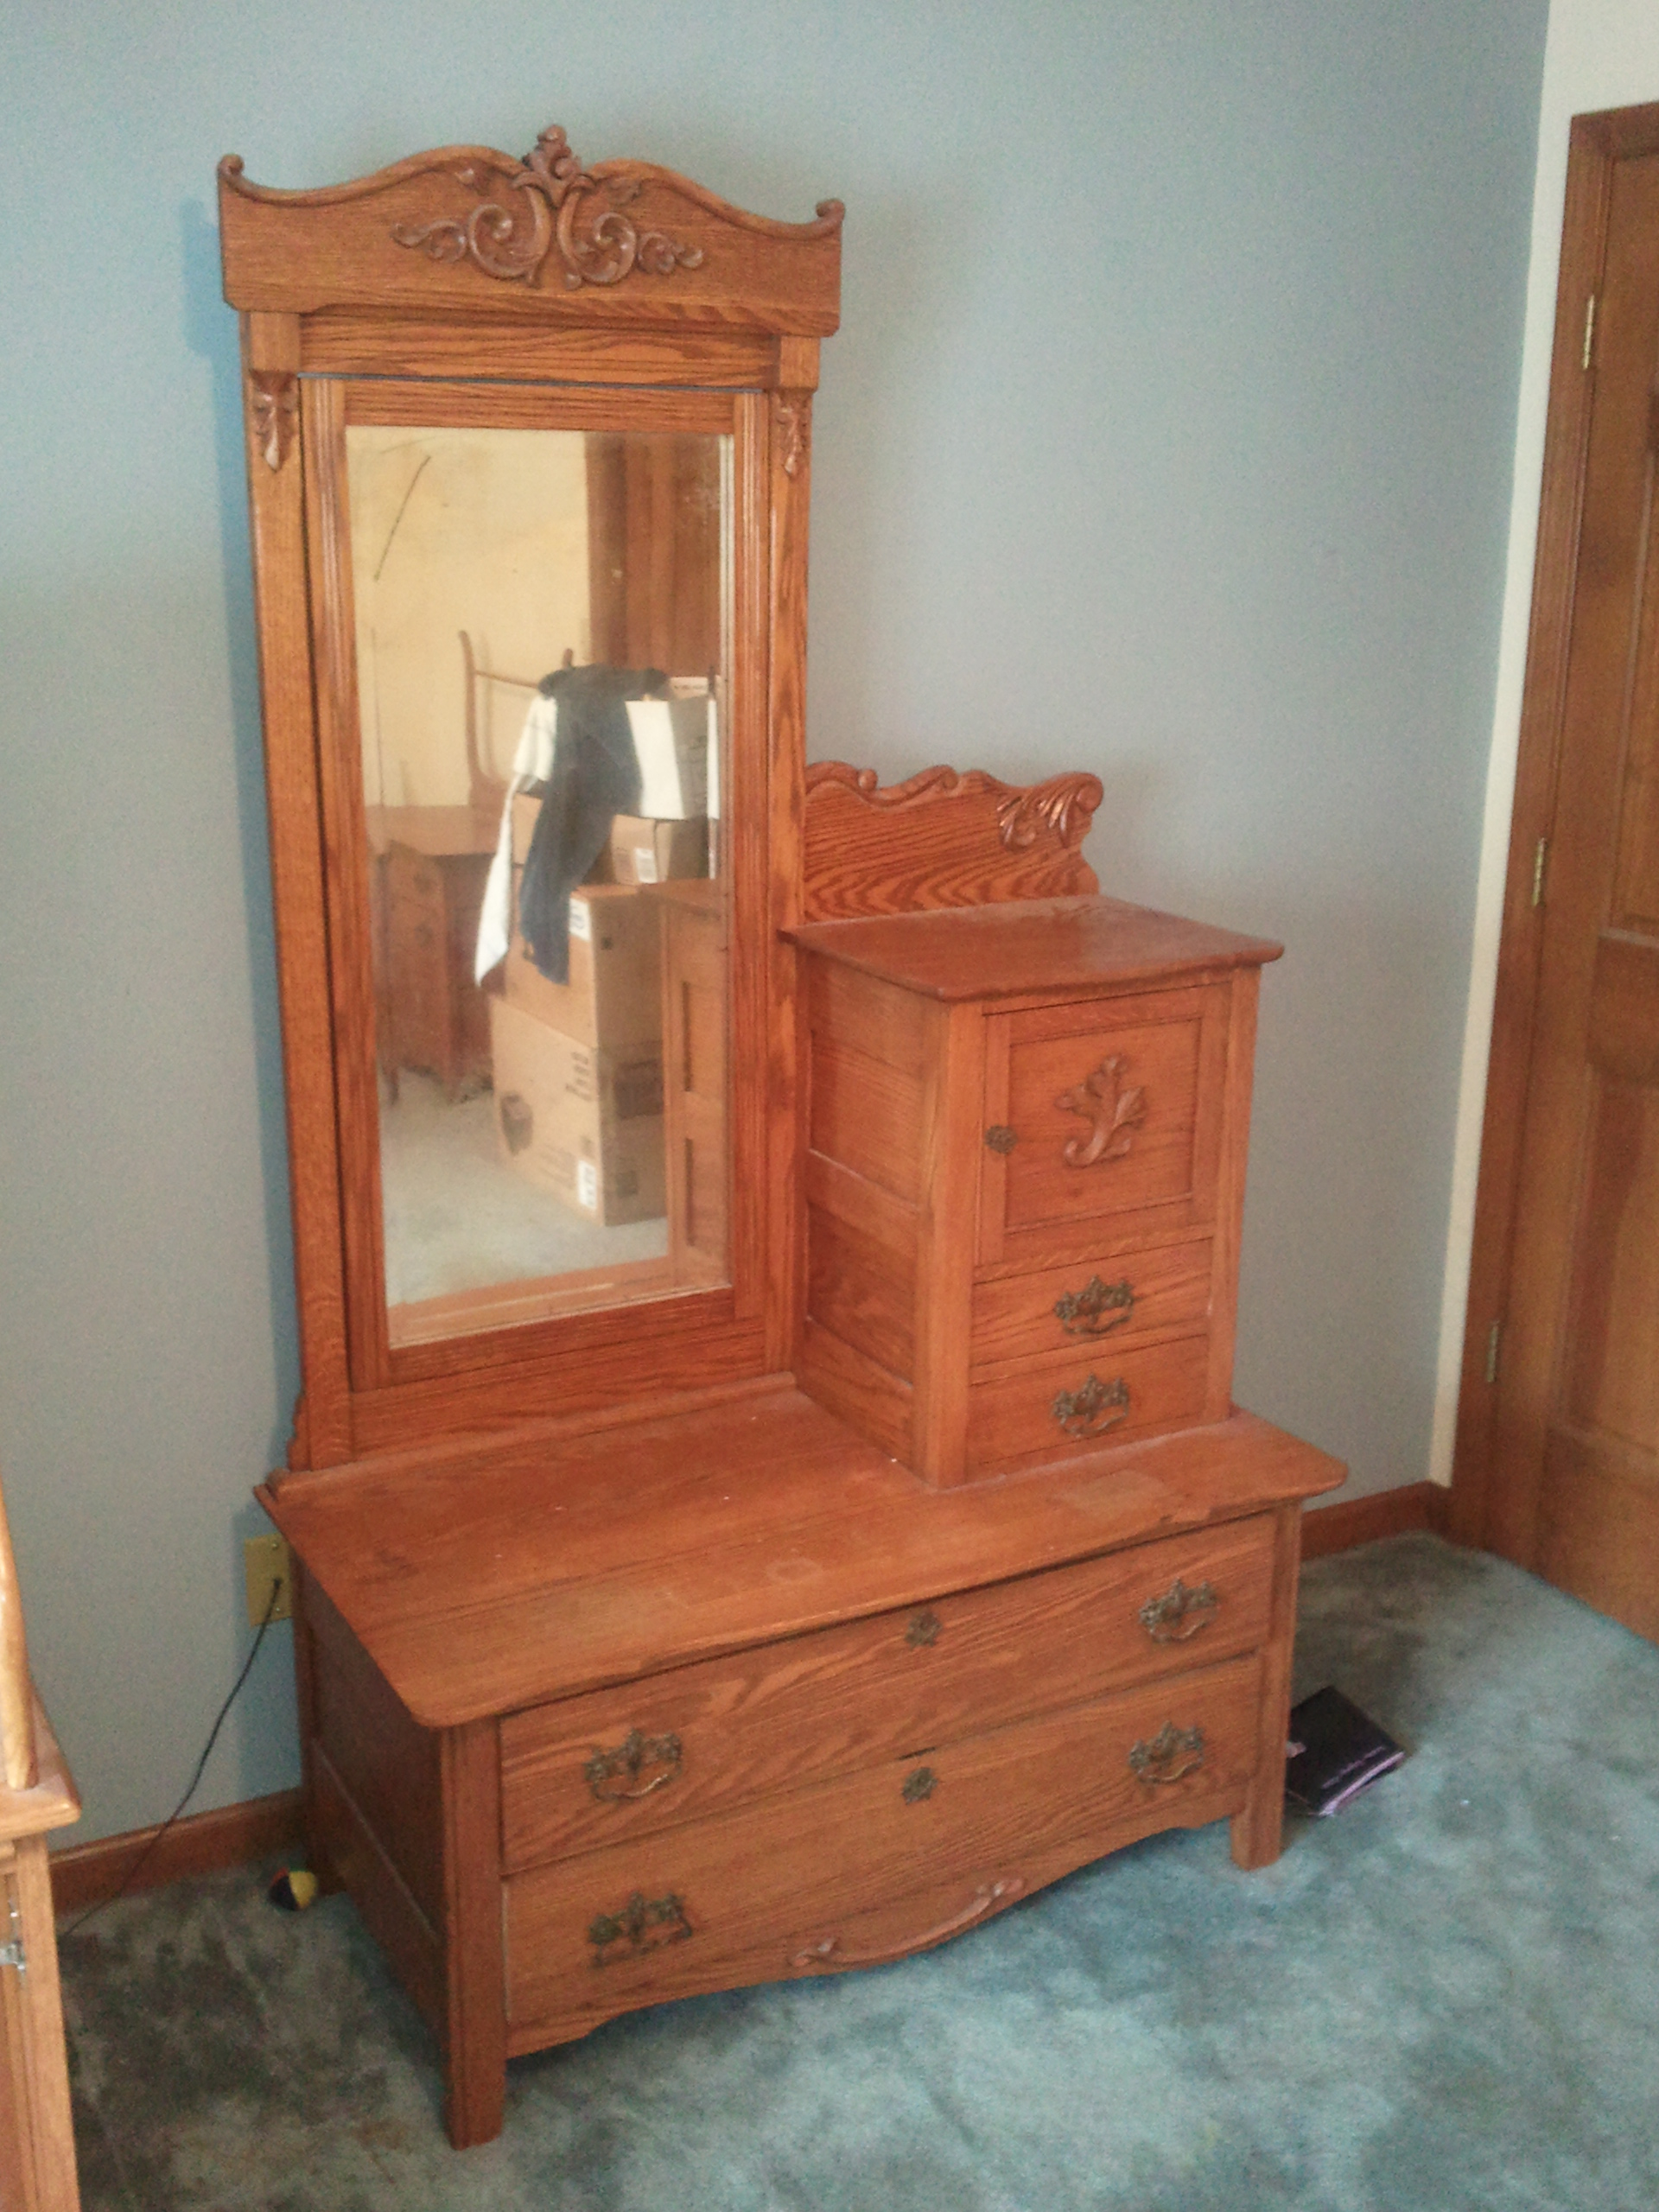 3 piece antique bedroom set for sale for Bed and dresser for sale